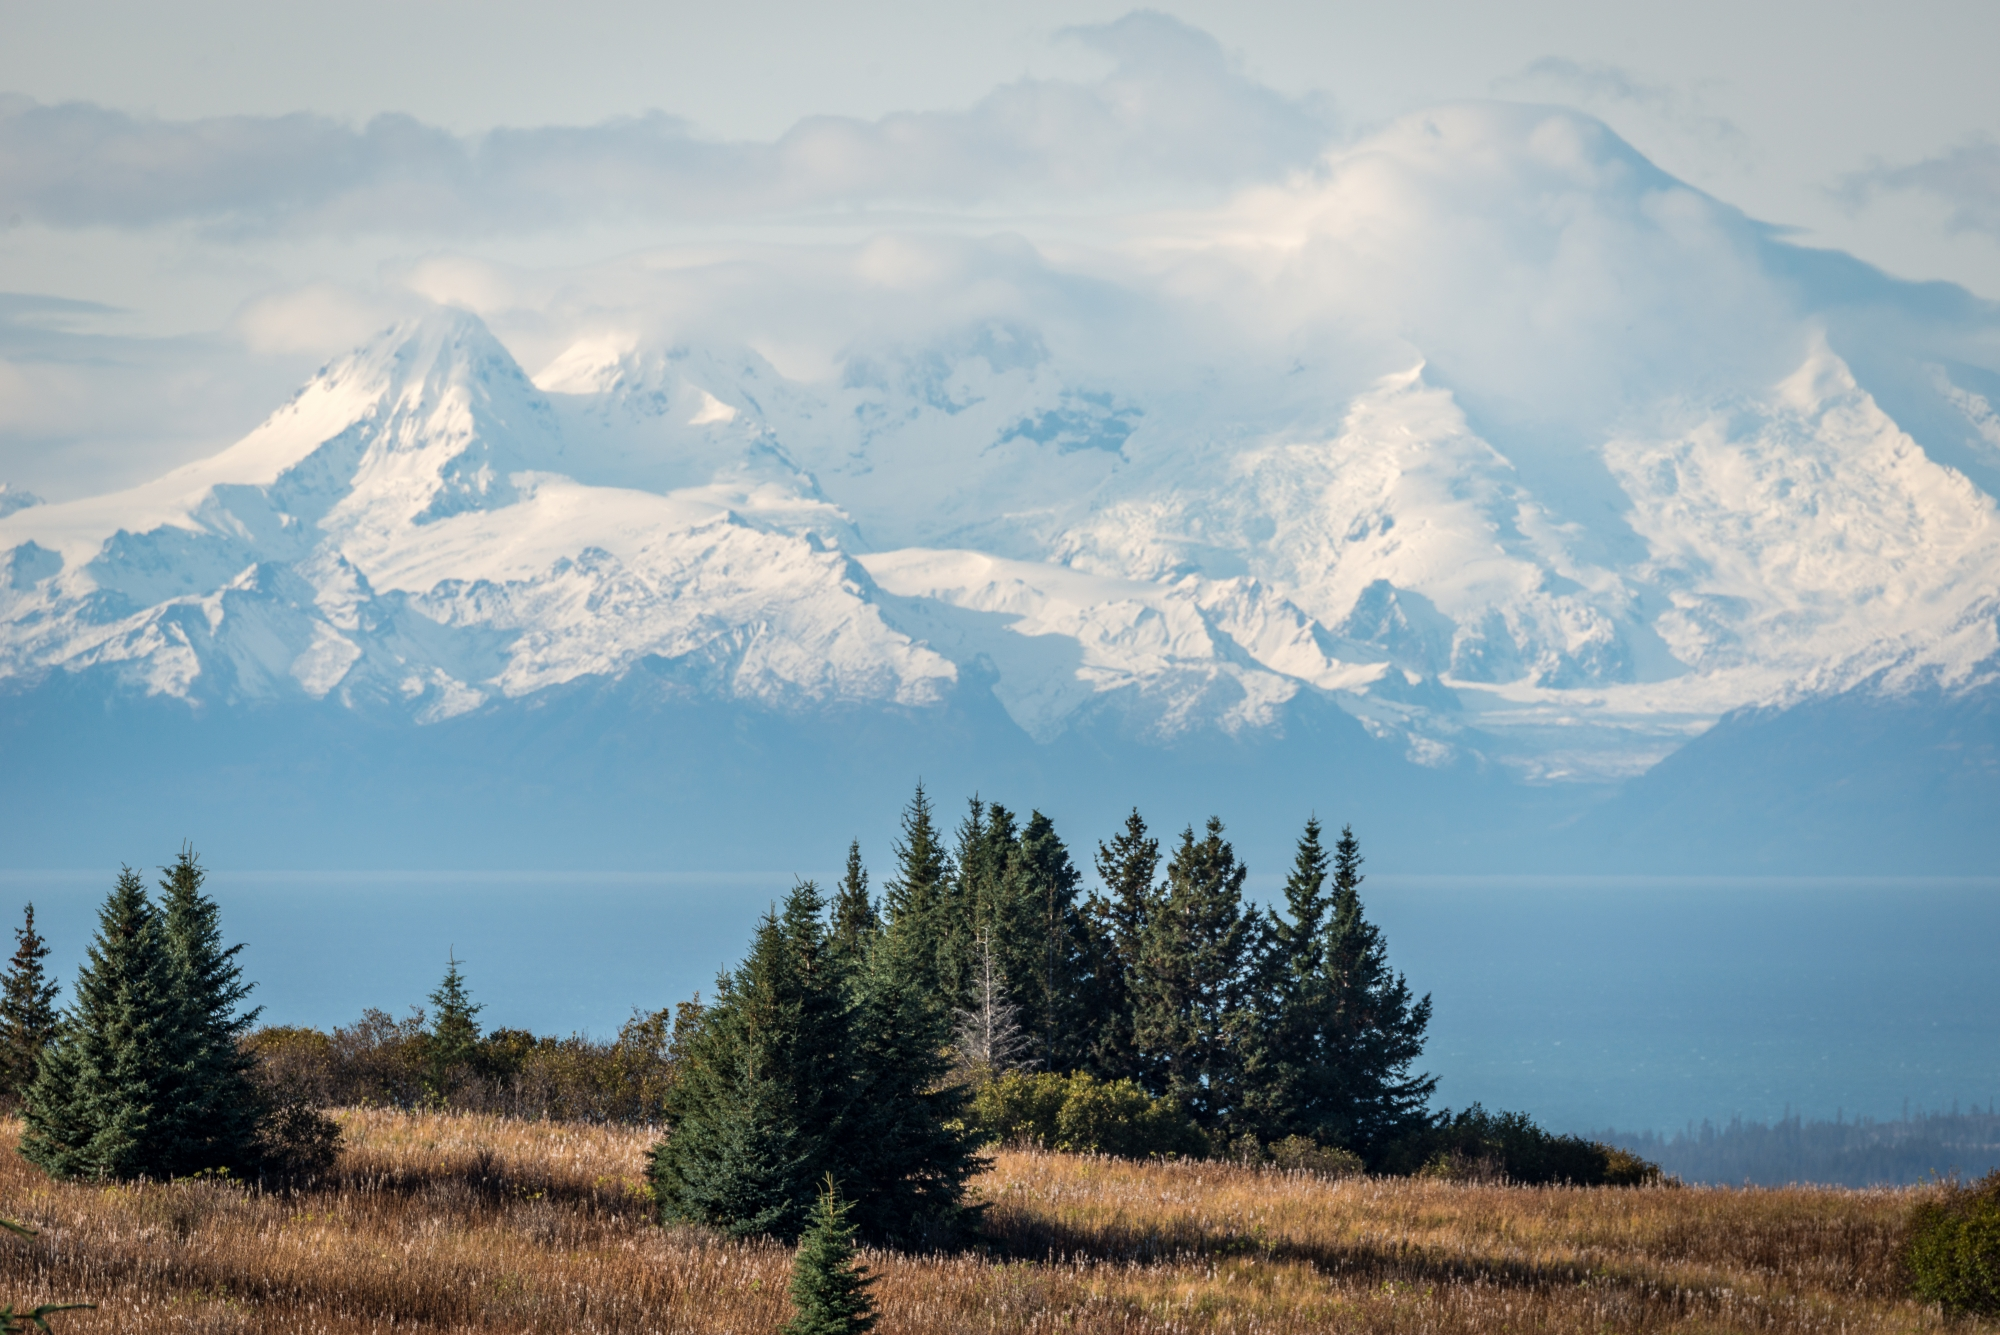 DSC9232 - a beautiful view of the mountains west of Homer, Alaska